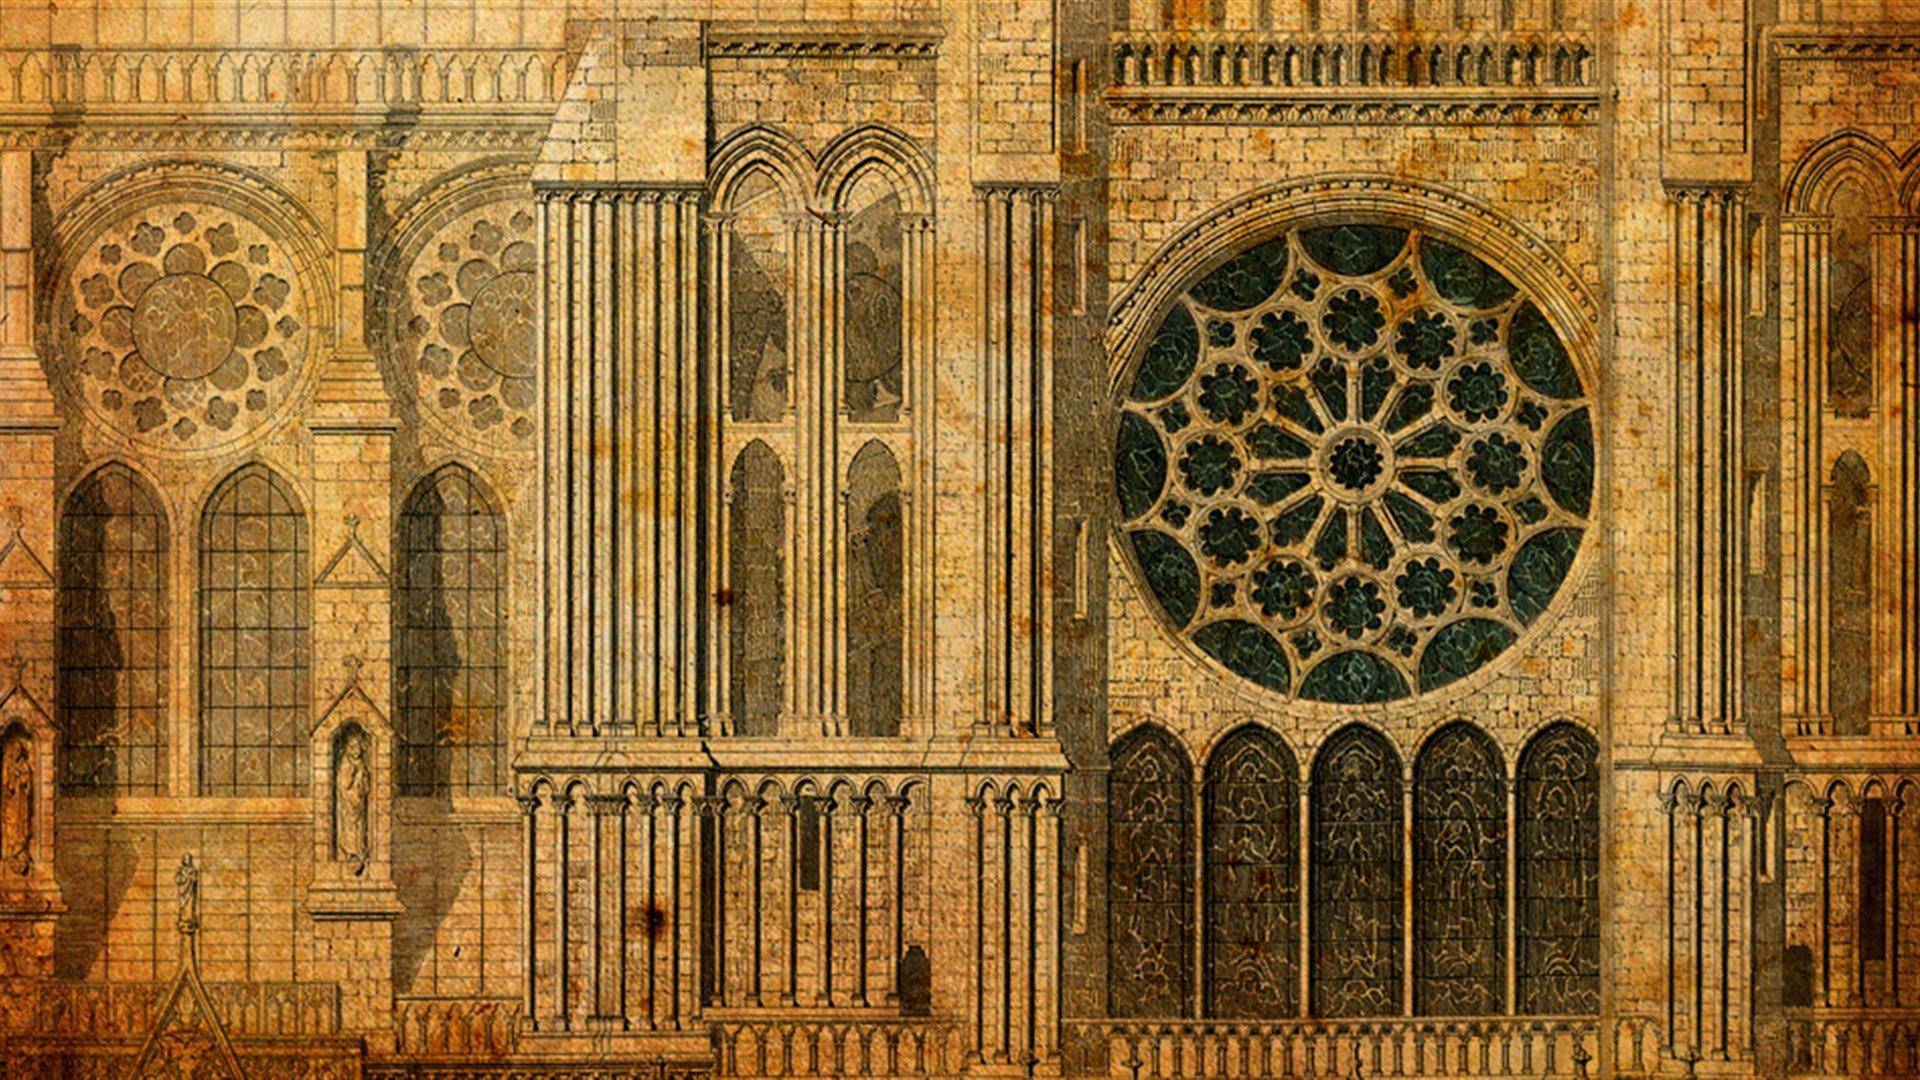 The Gothic Cathedral: the Building of Light